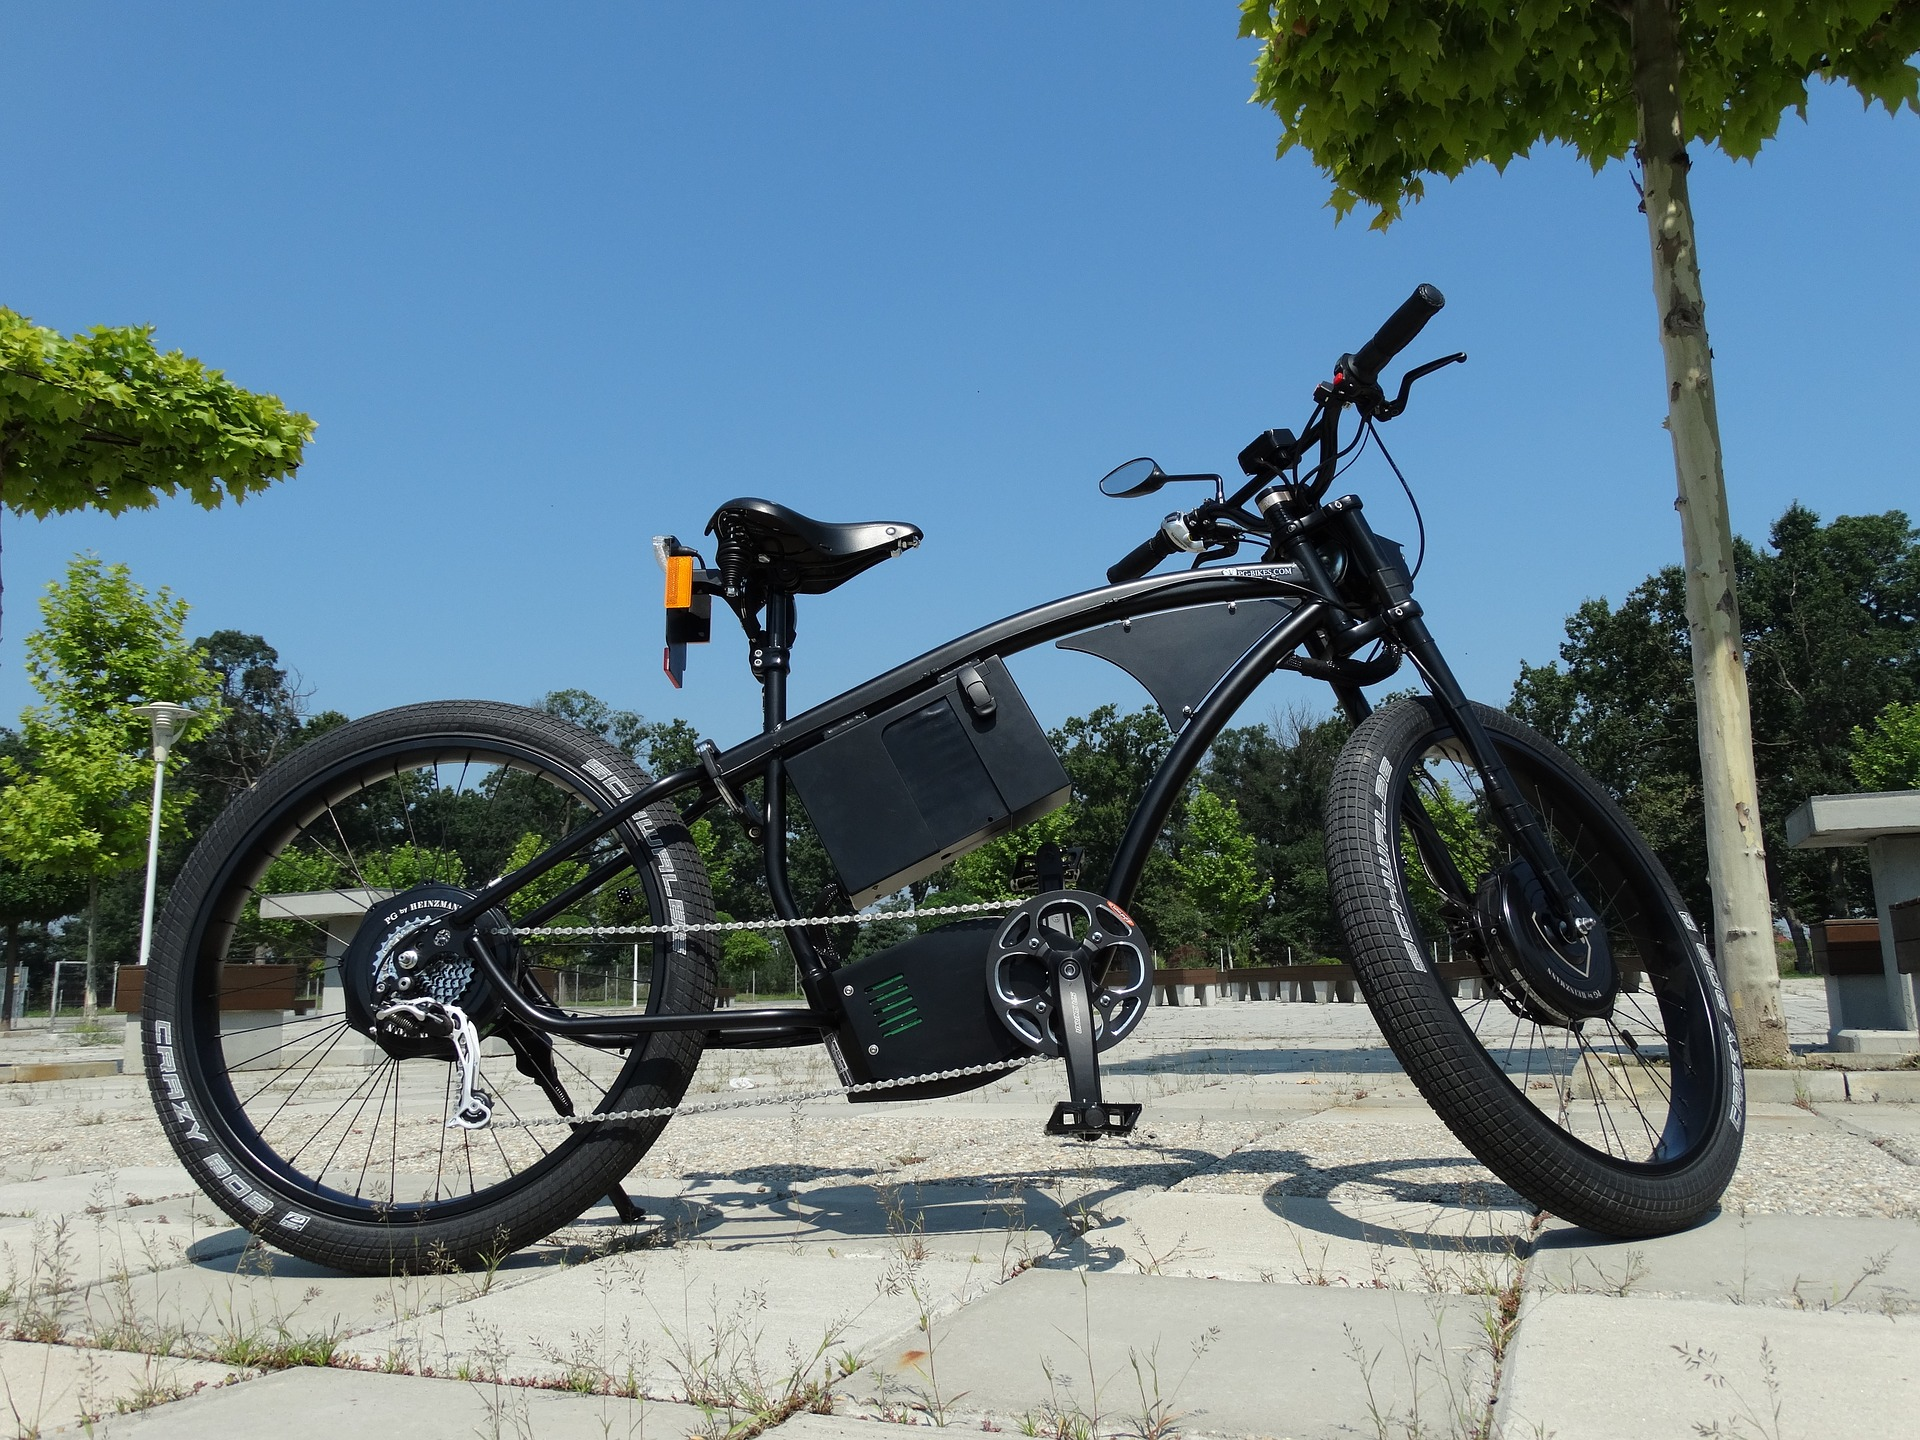 5 Super Tips for Purchasing Your First Affordable E-bike